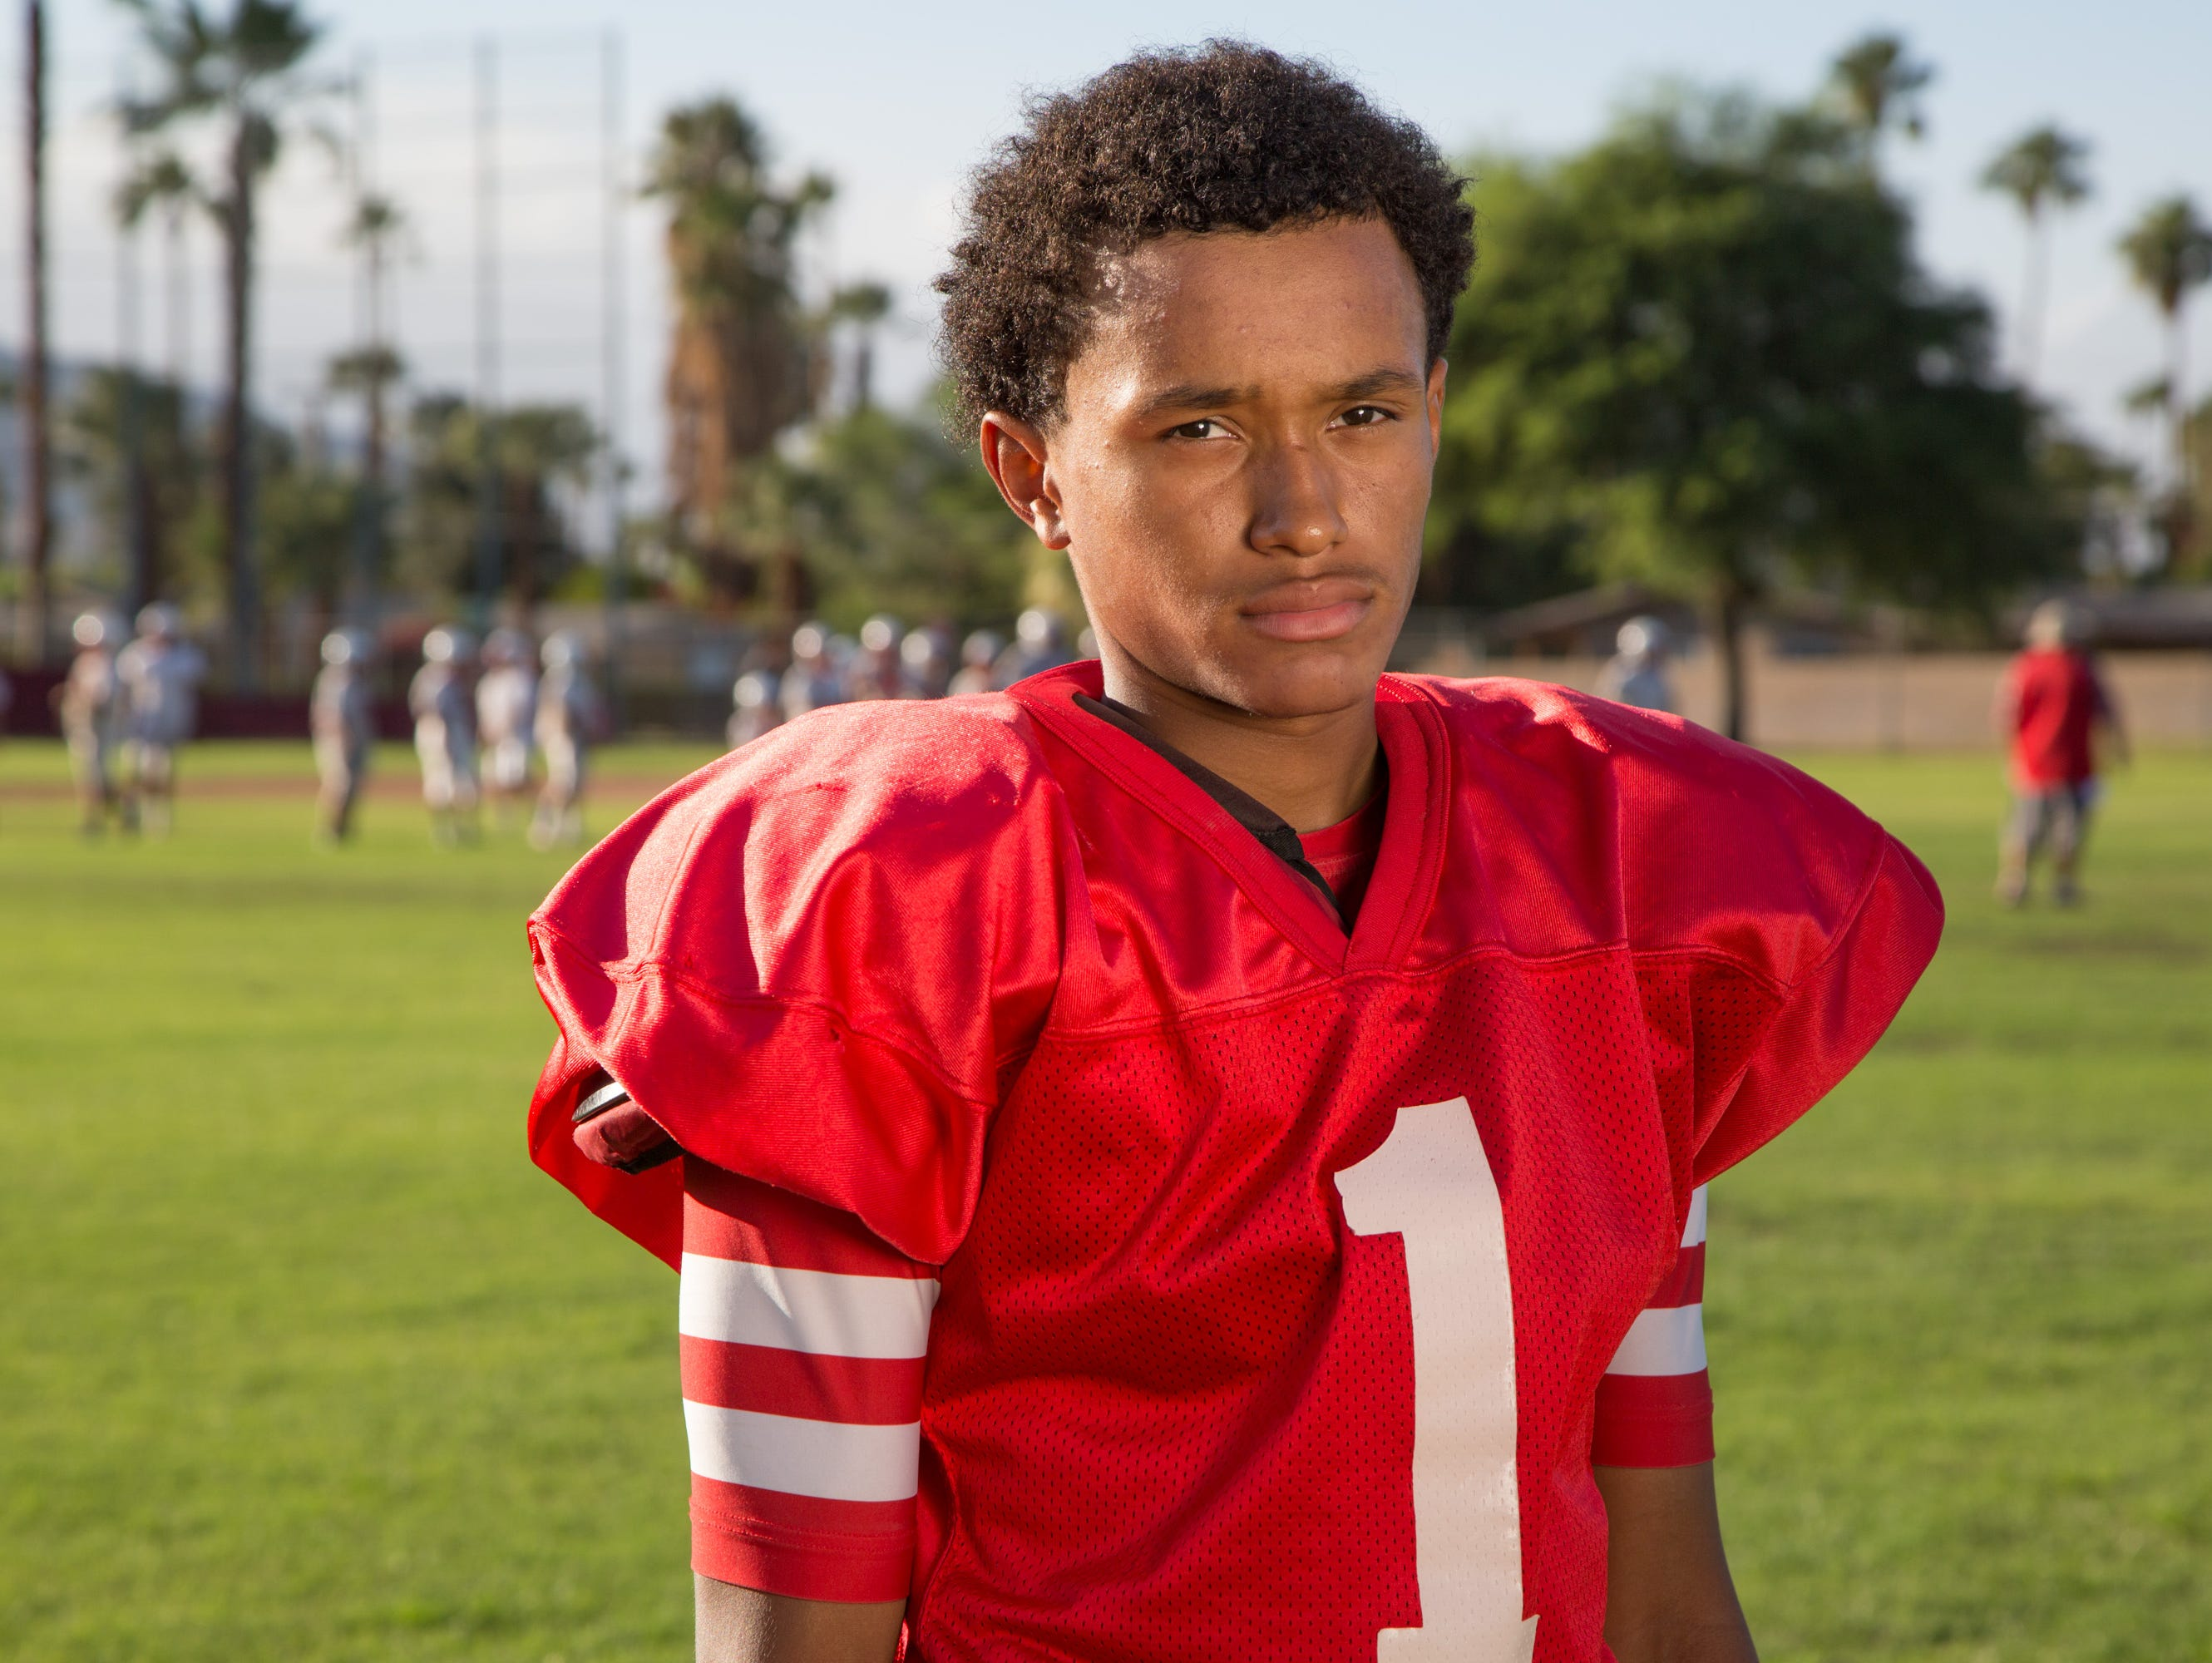 Palm Springs sophomore quarterback Jeremy Dotson helped his team gain their first win of the season last Friday with 5 TD passes, Sept. 22, 2016.